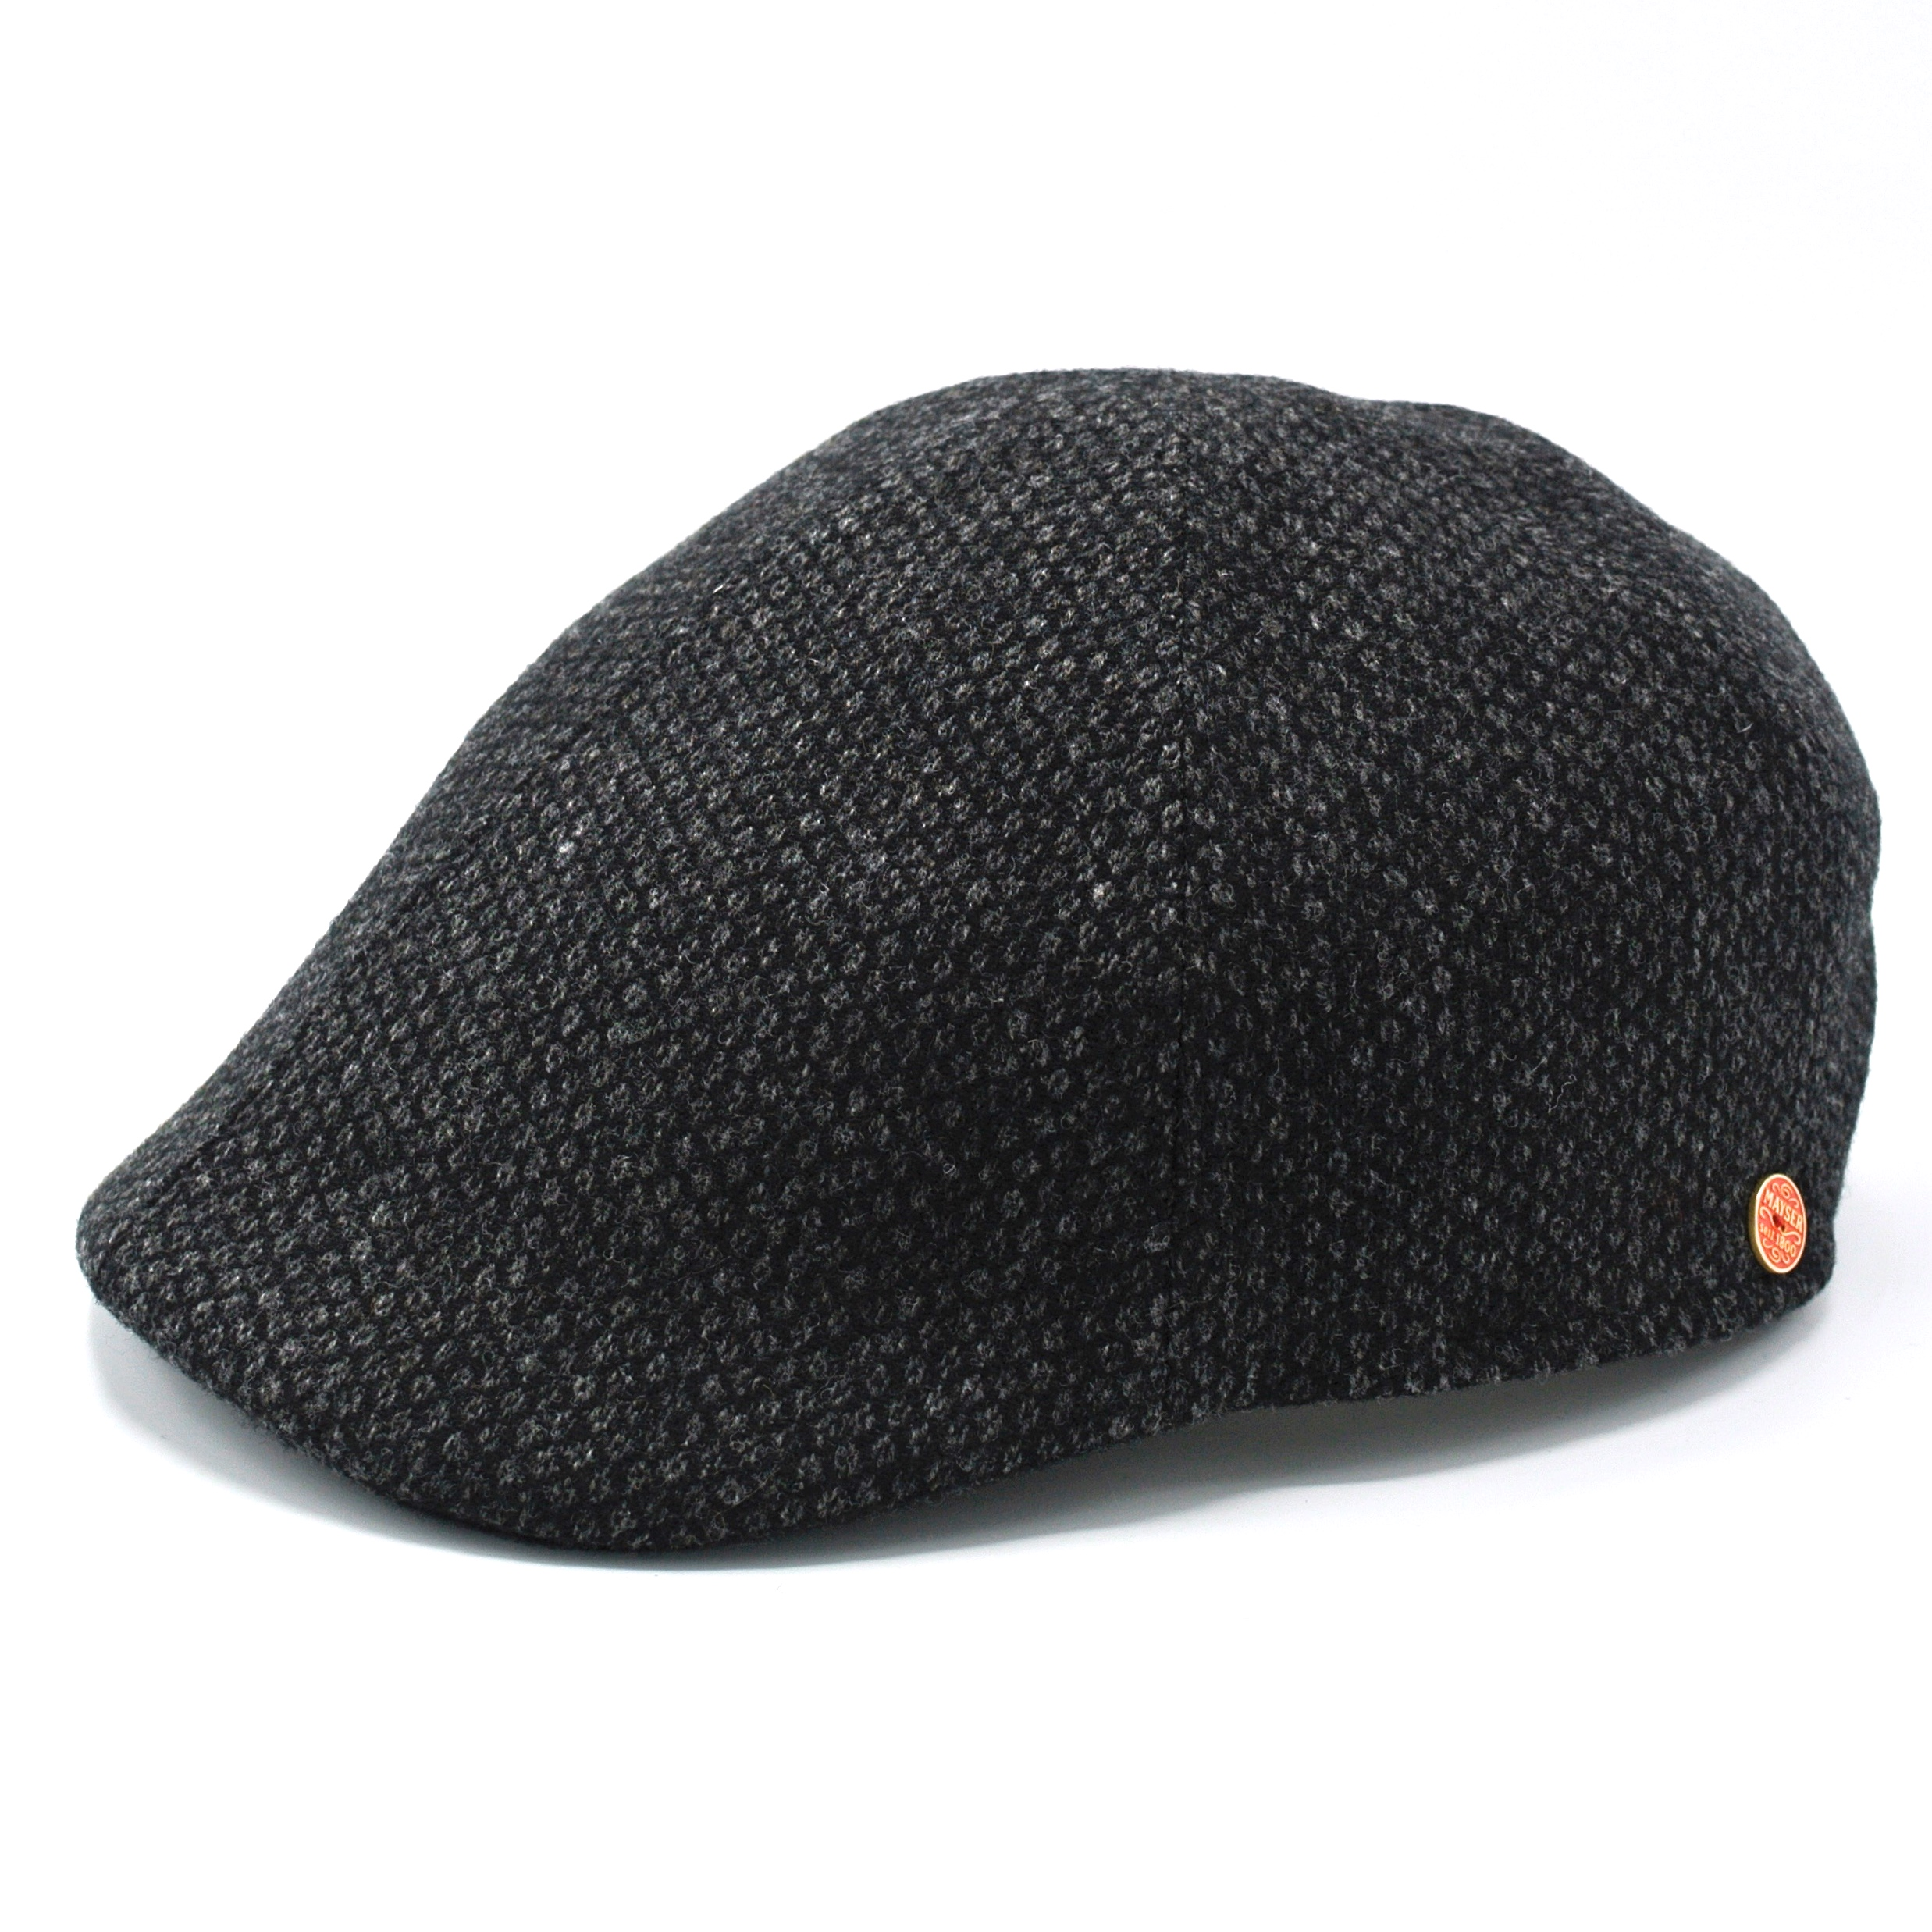 Mayser Paddy Duck Cap Black/Grey